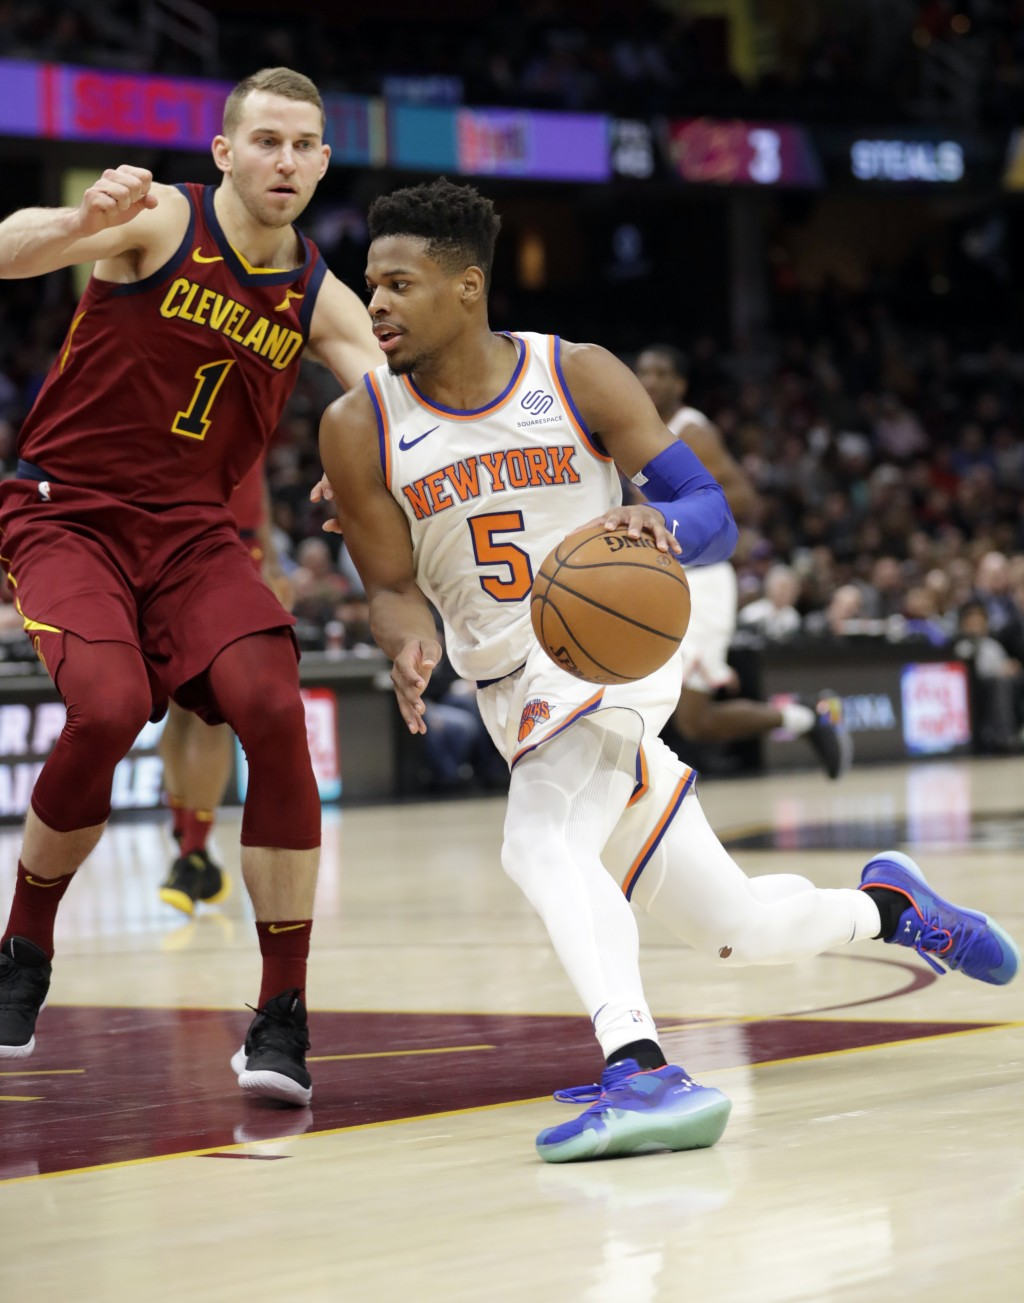 New York Knicks' Dennis Smith Jr. (5) drives past Cleveland Cavaliers' Nik Stauskas (1) in the second half of an NBA basketball game, Monday, Feb. 11,